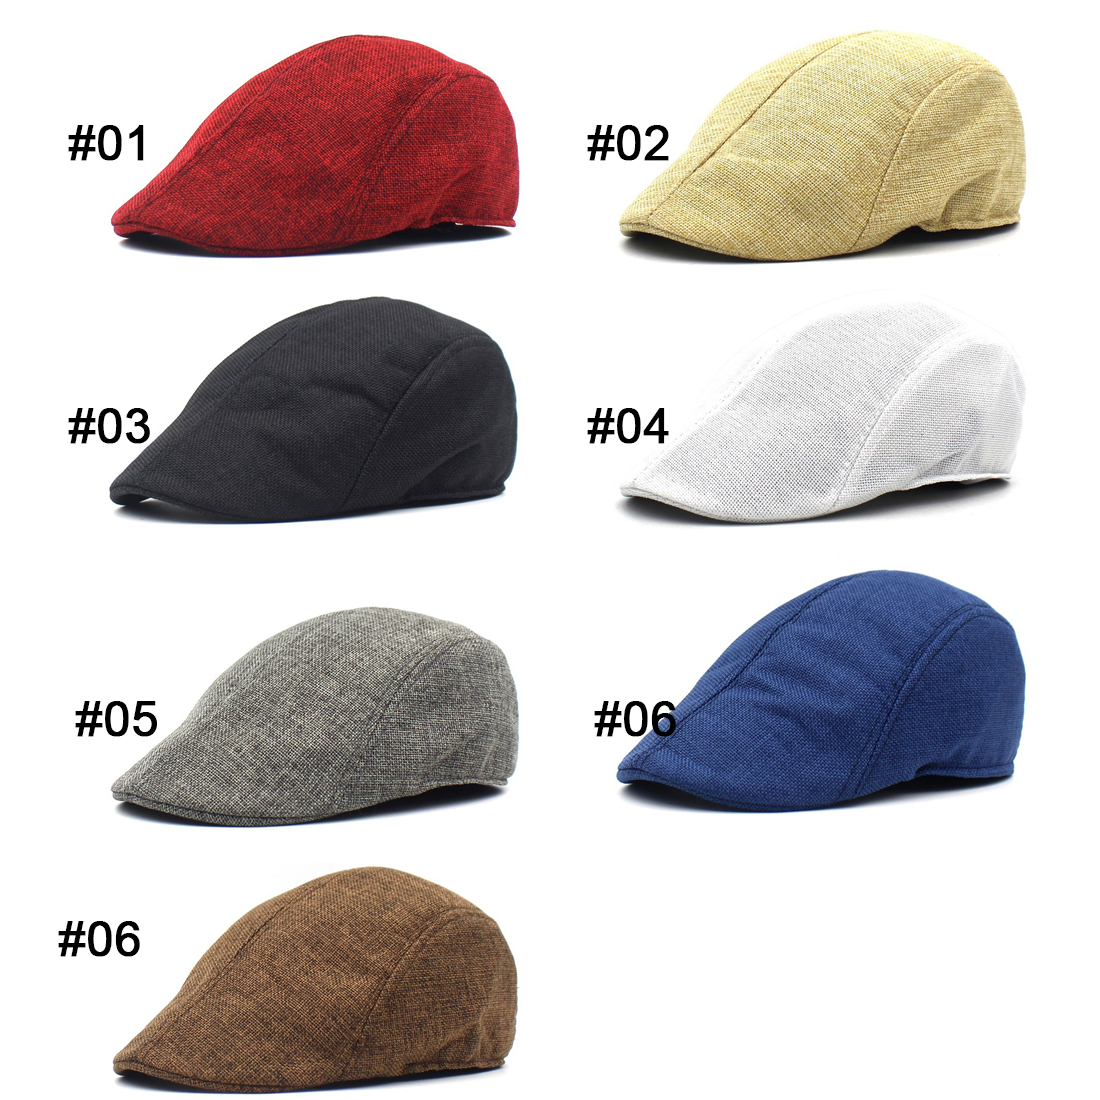 Summer Beret Caps for Men Women Vintage news boy cap Linen Outdoor Hats Brand Sun Hat Unisex Duckbill Caps sports cap in Men 39 s Berets from Apparel Accessories